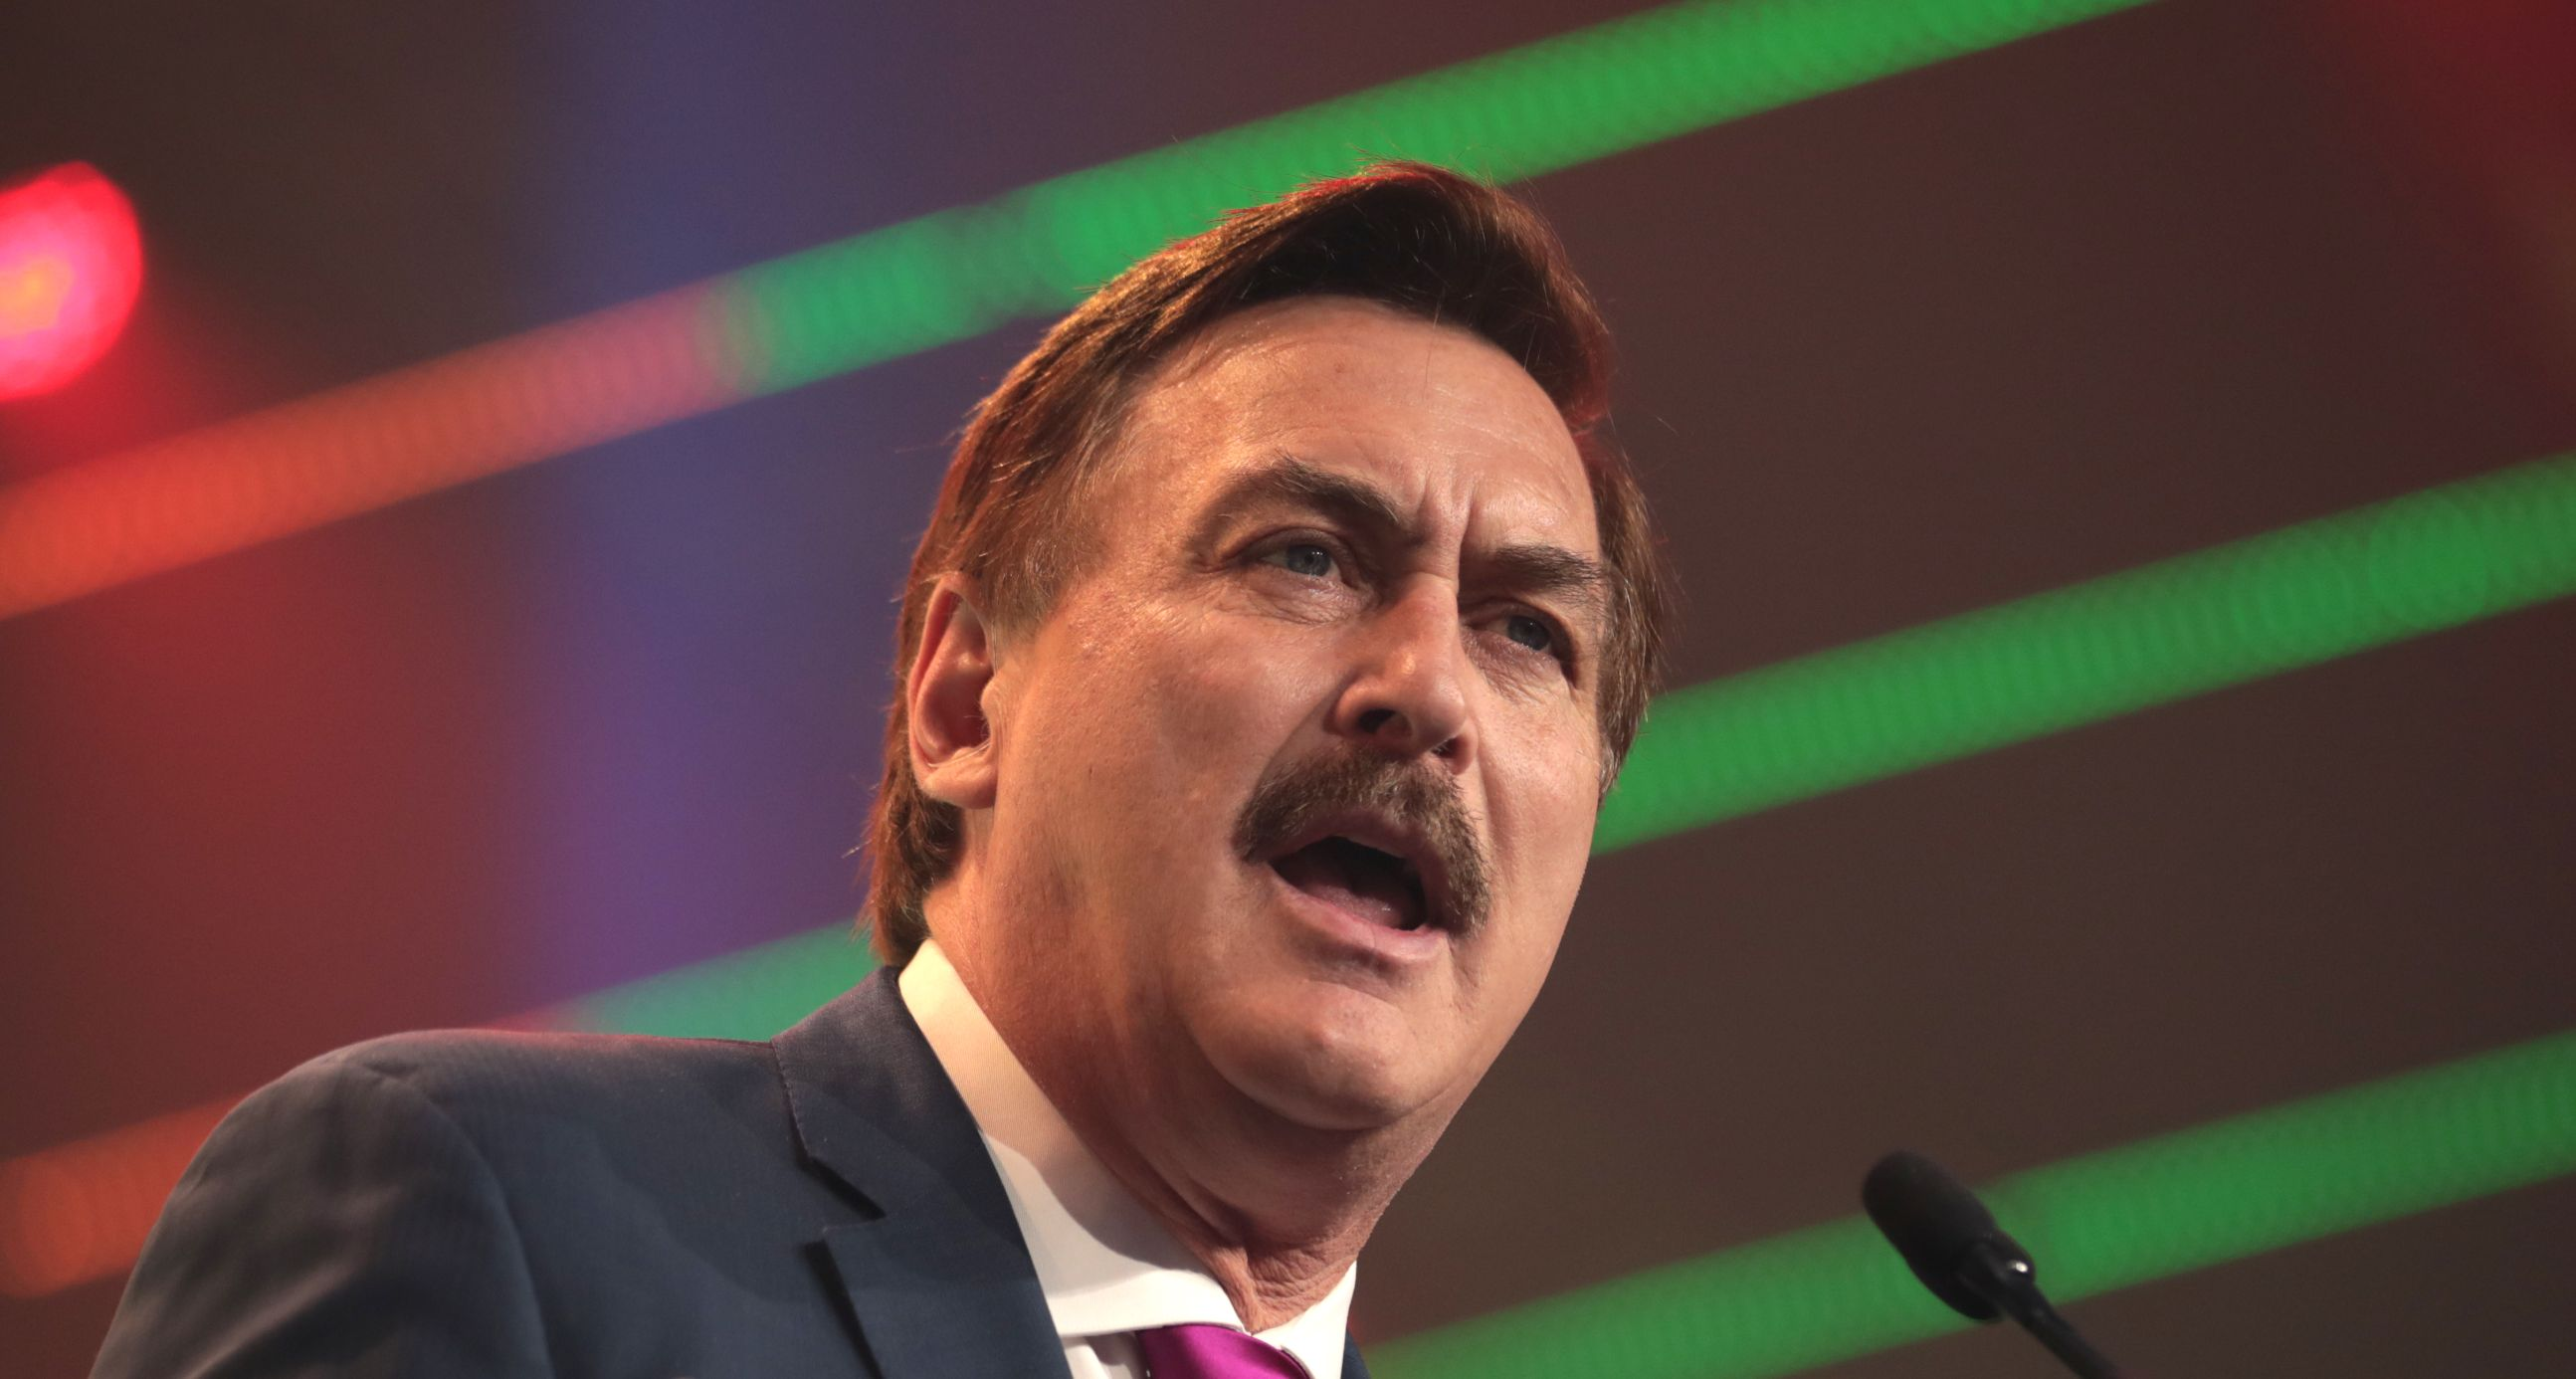 MyPillow CEO Mike Lindell delivers a speech.